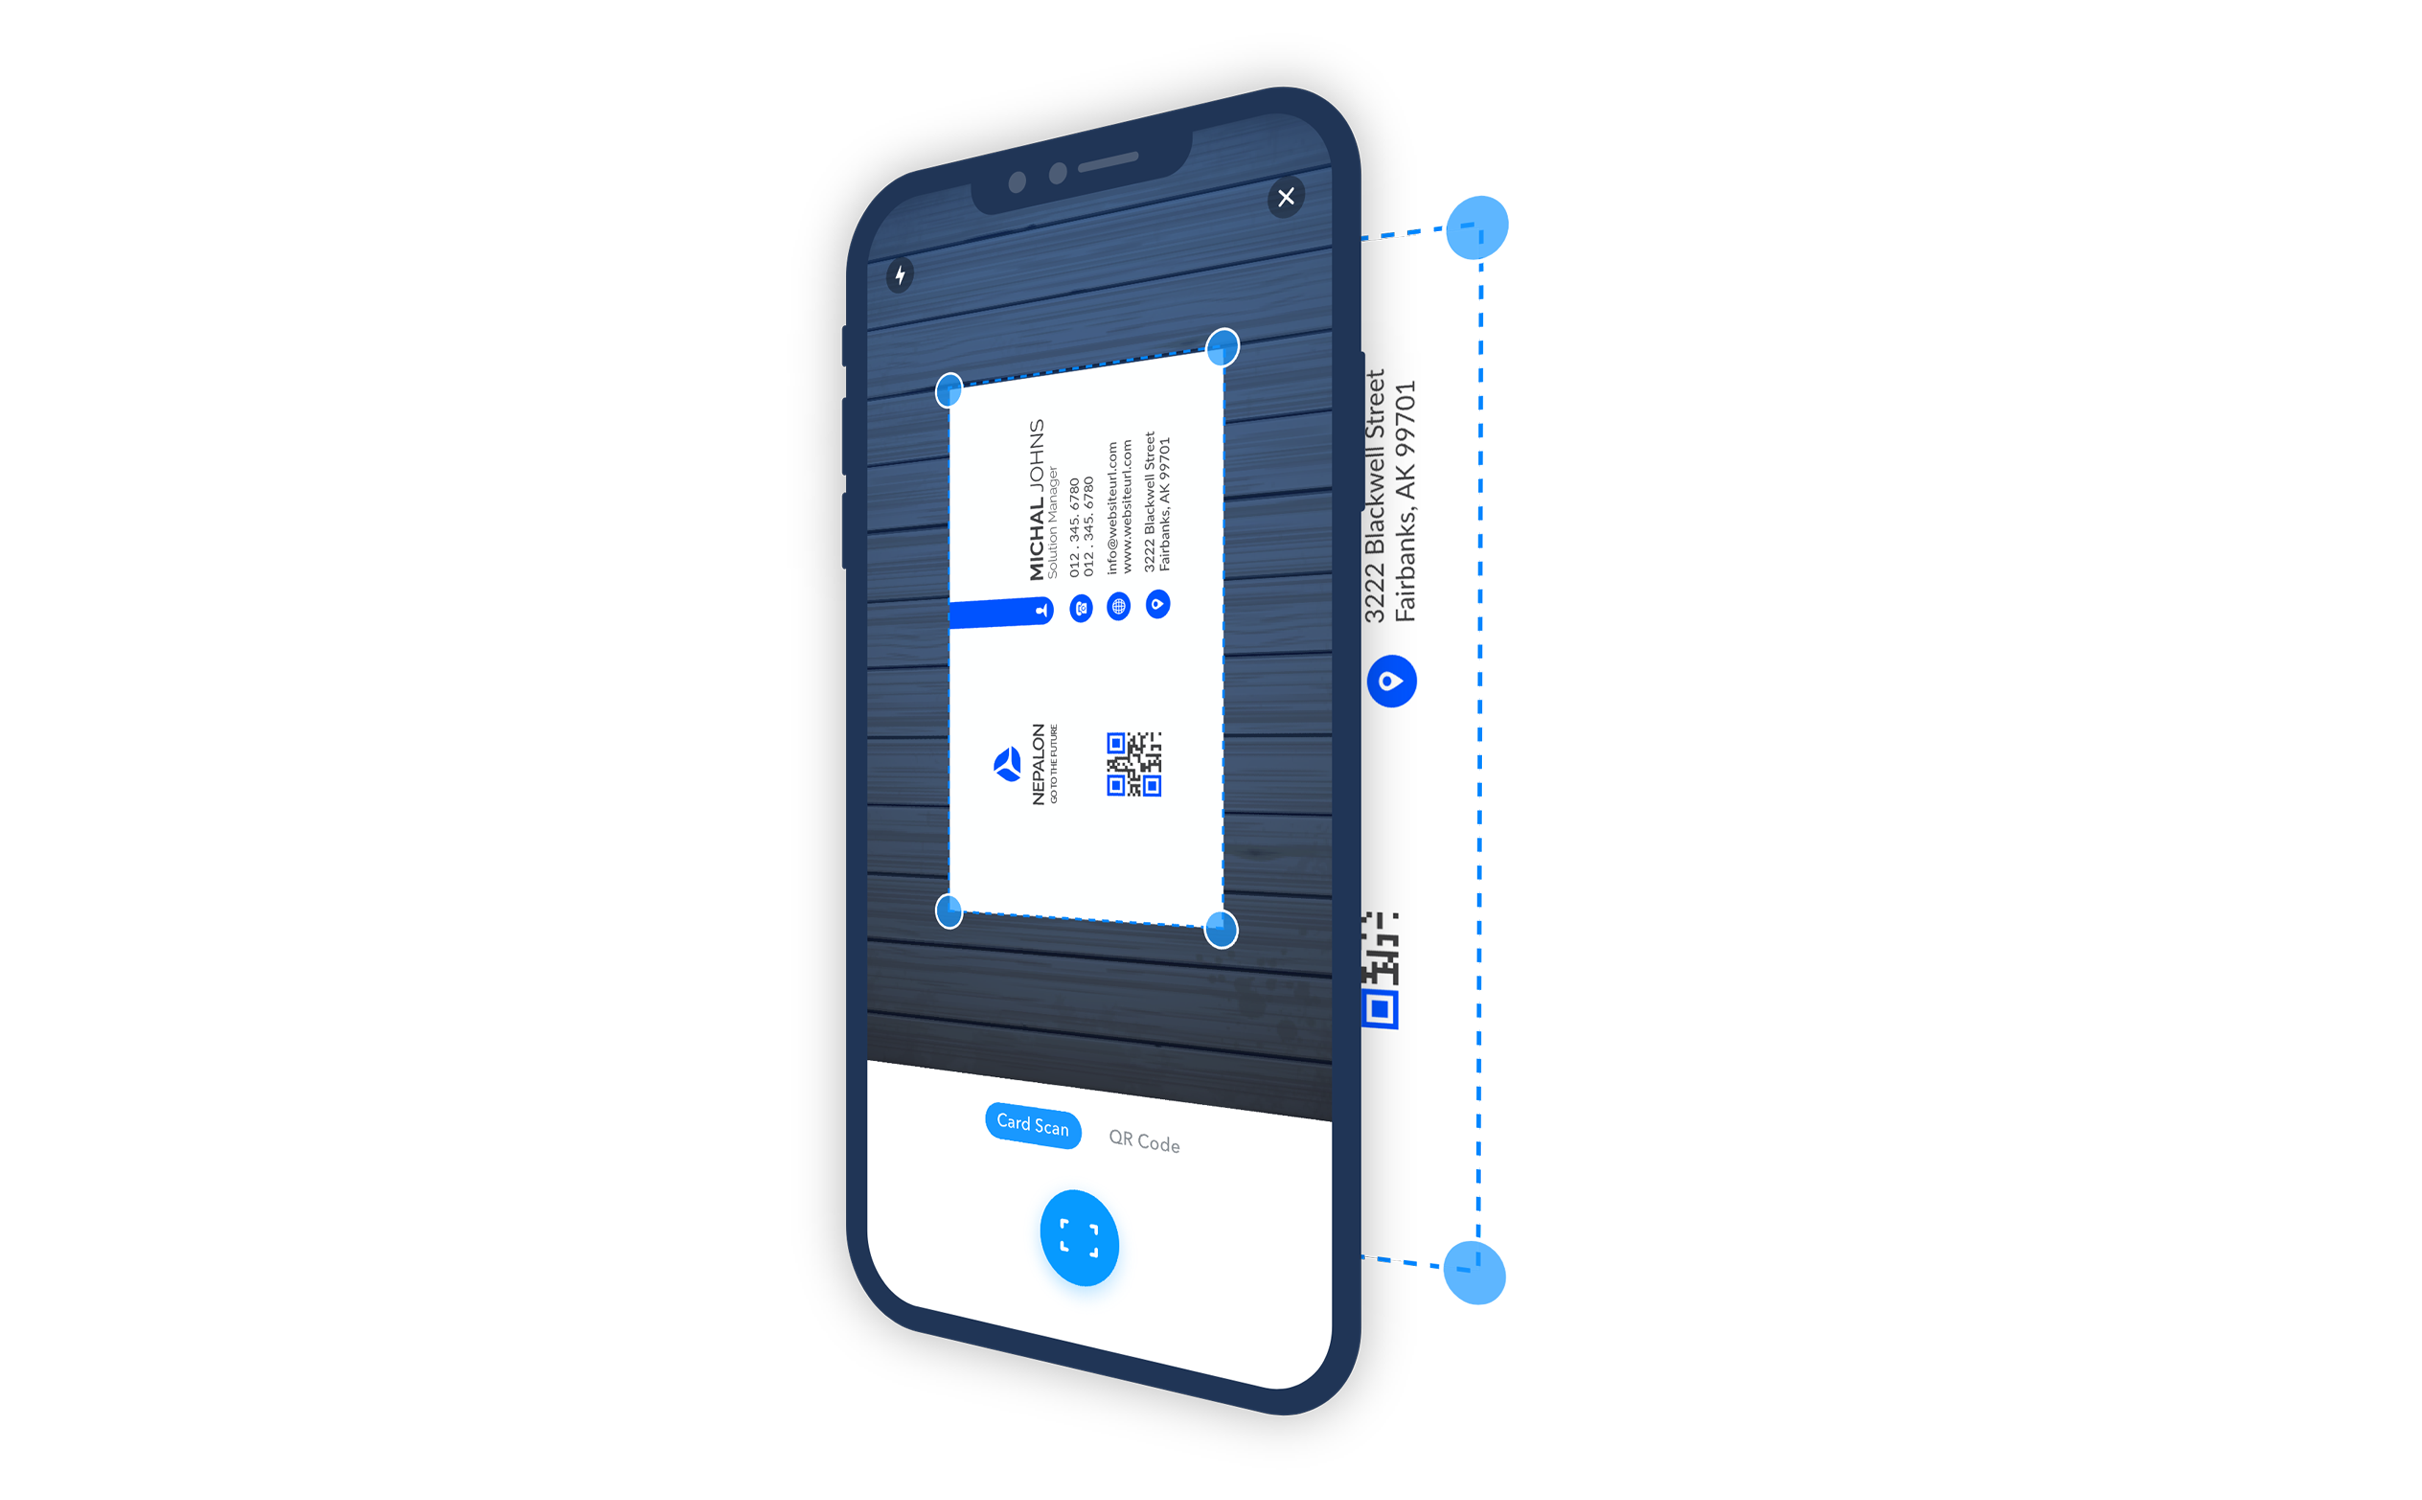 Business card scanner app for iPhone